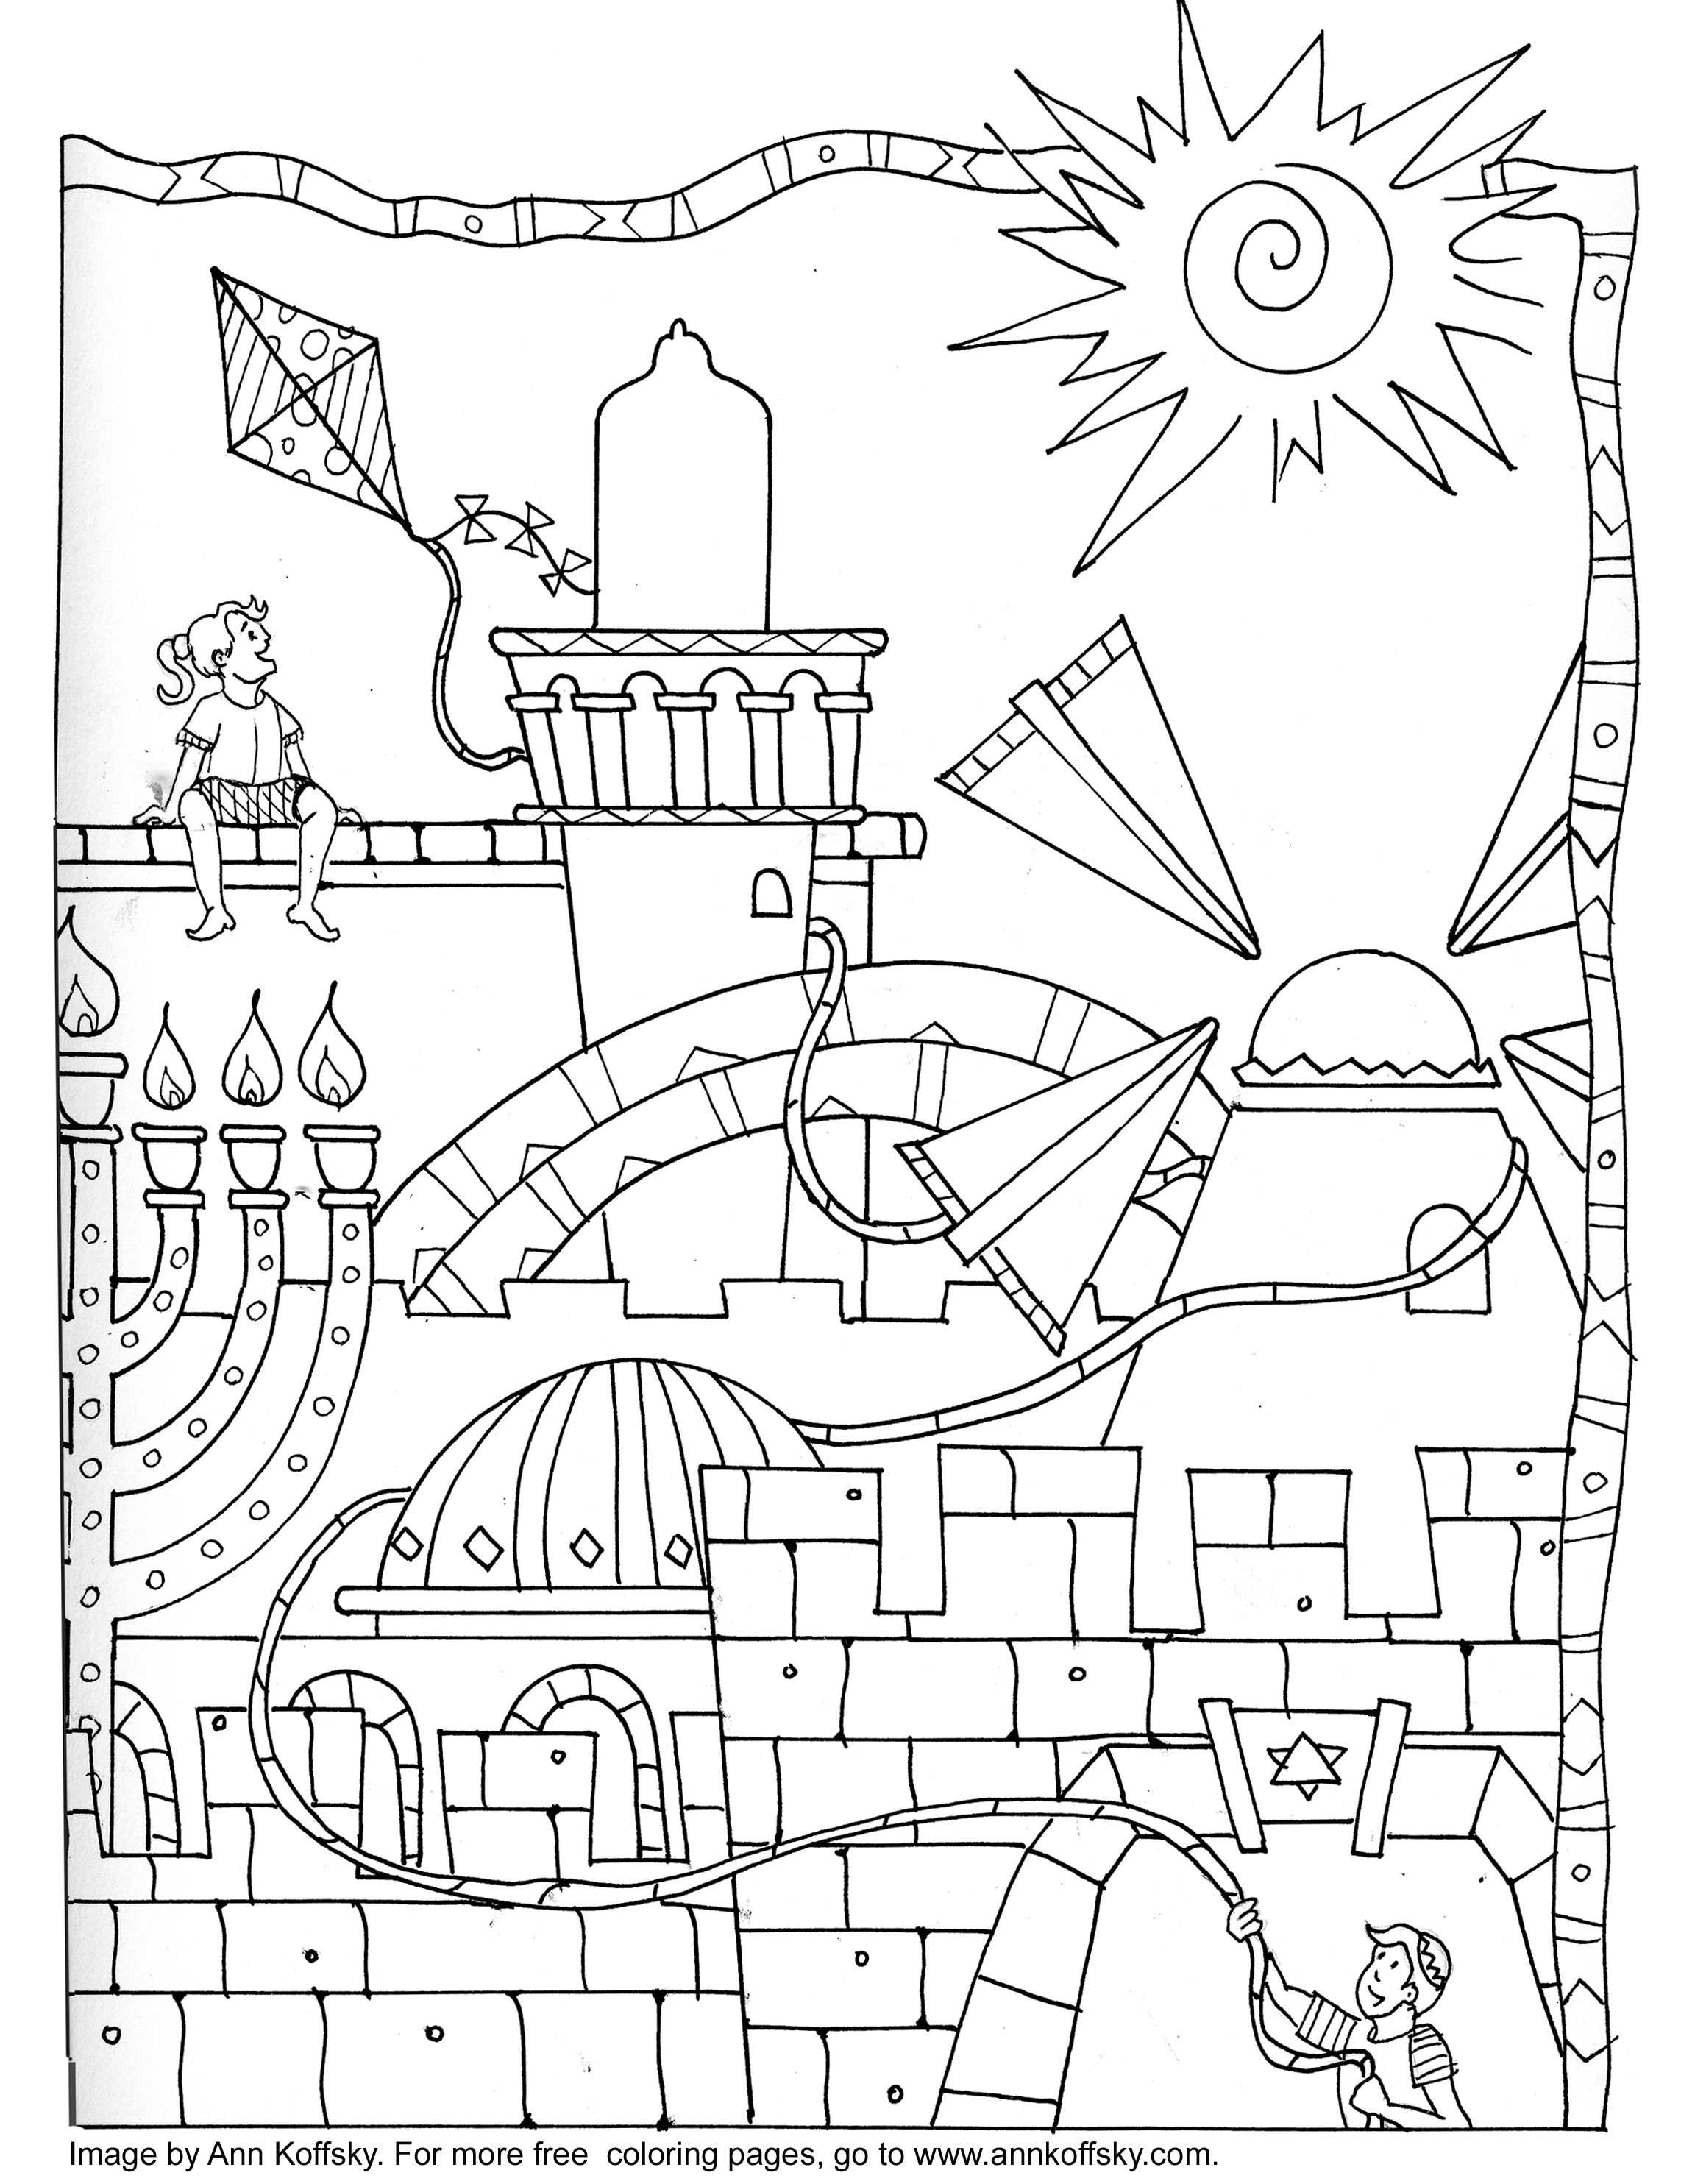 Coloring Page 9 Days Flag Coloring Pages Coloring Pages